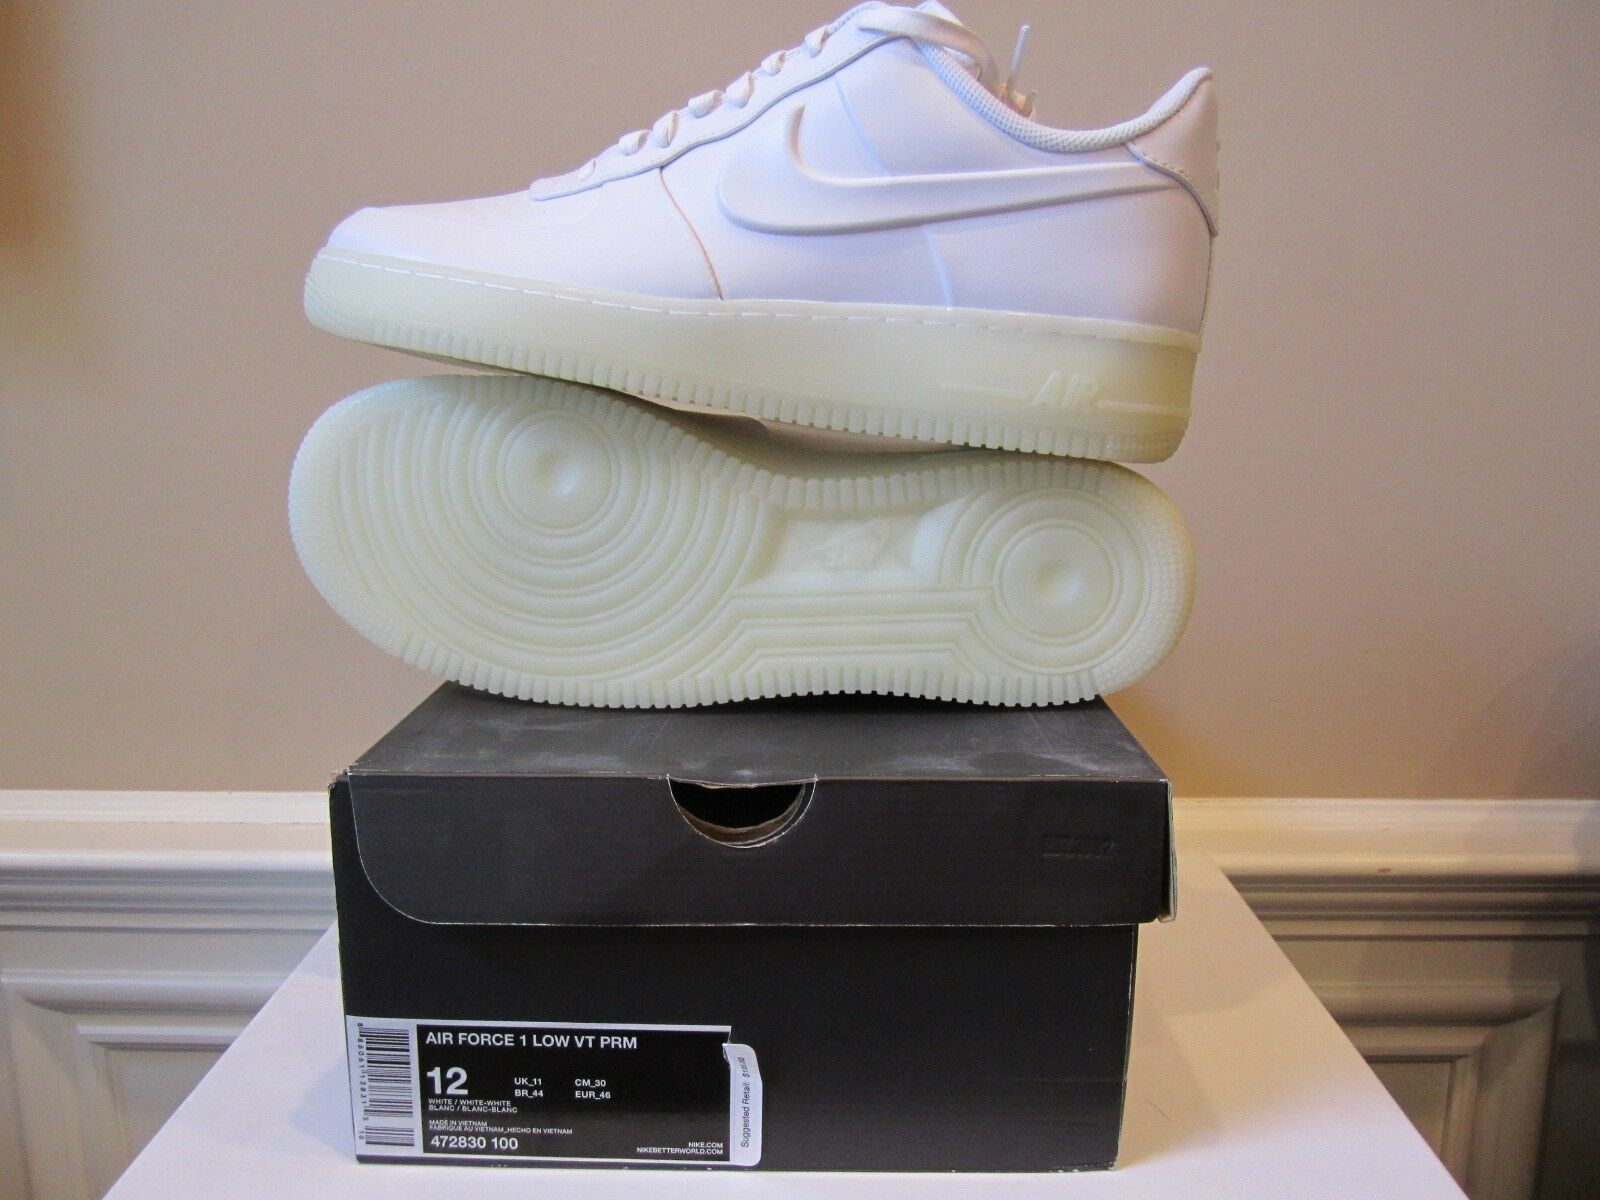 2018 Nike Air Force 1 baja Blanco VT prima VAC Tech Blanco baja Foamposite 472830-sz12 3a0161